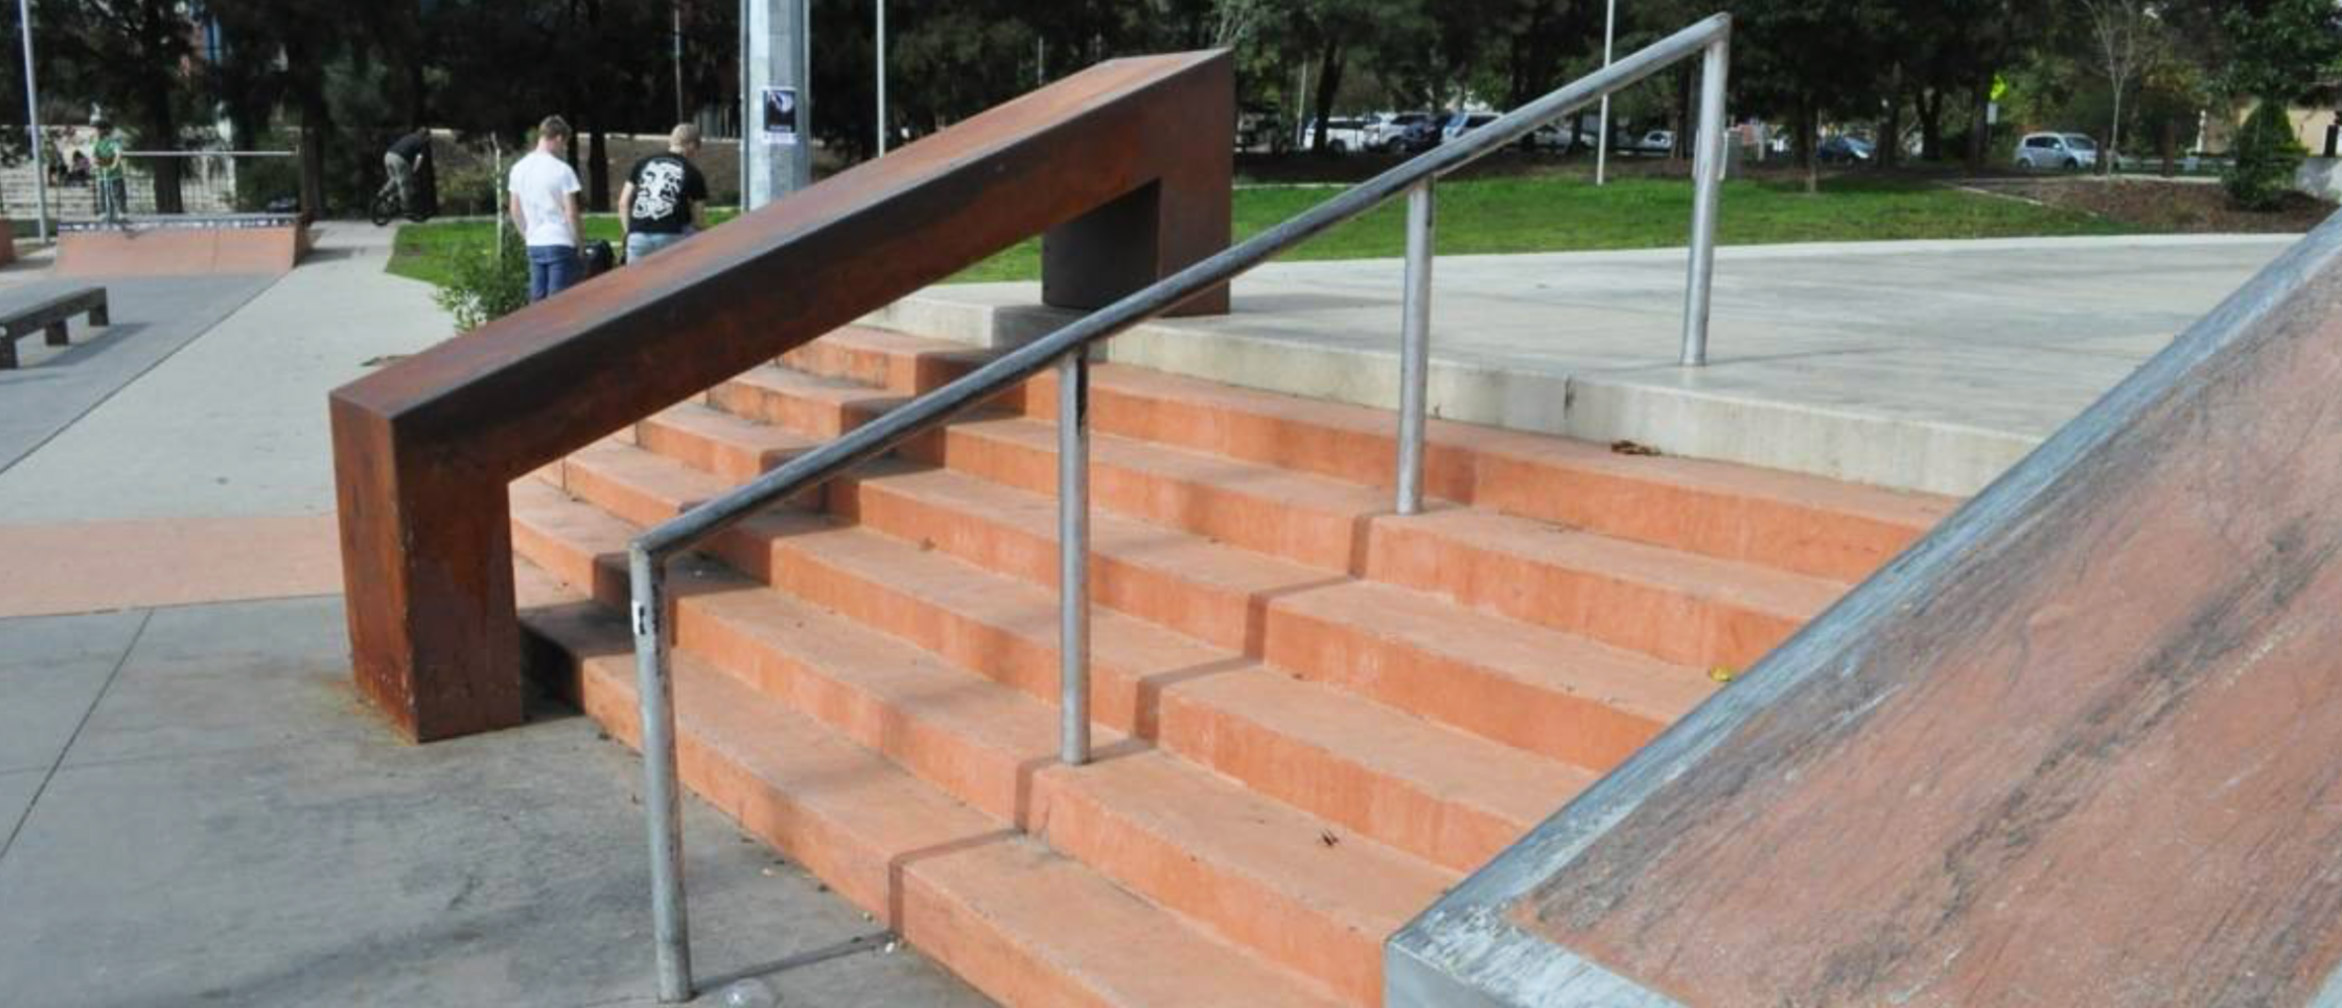 Belconnen skate park rail and hubba